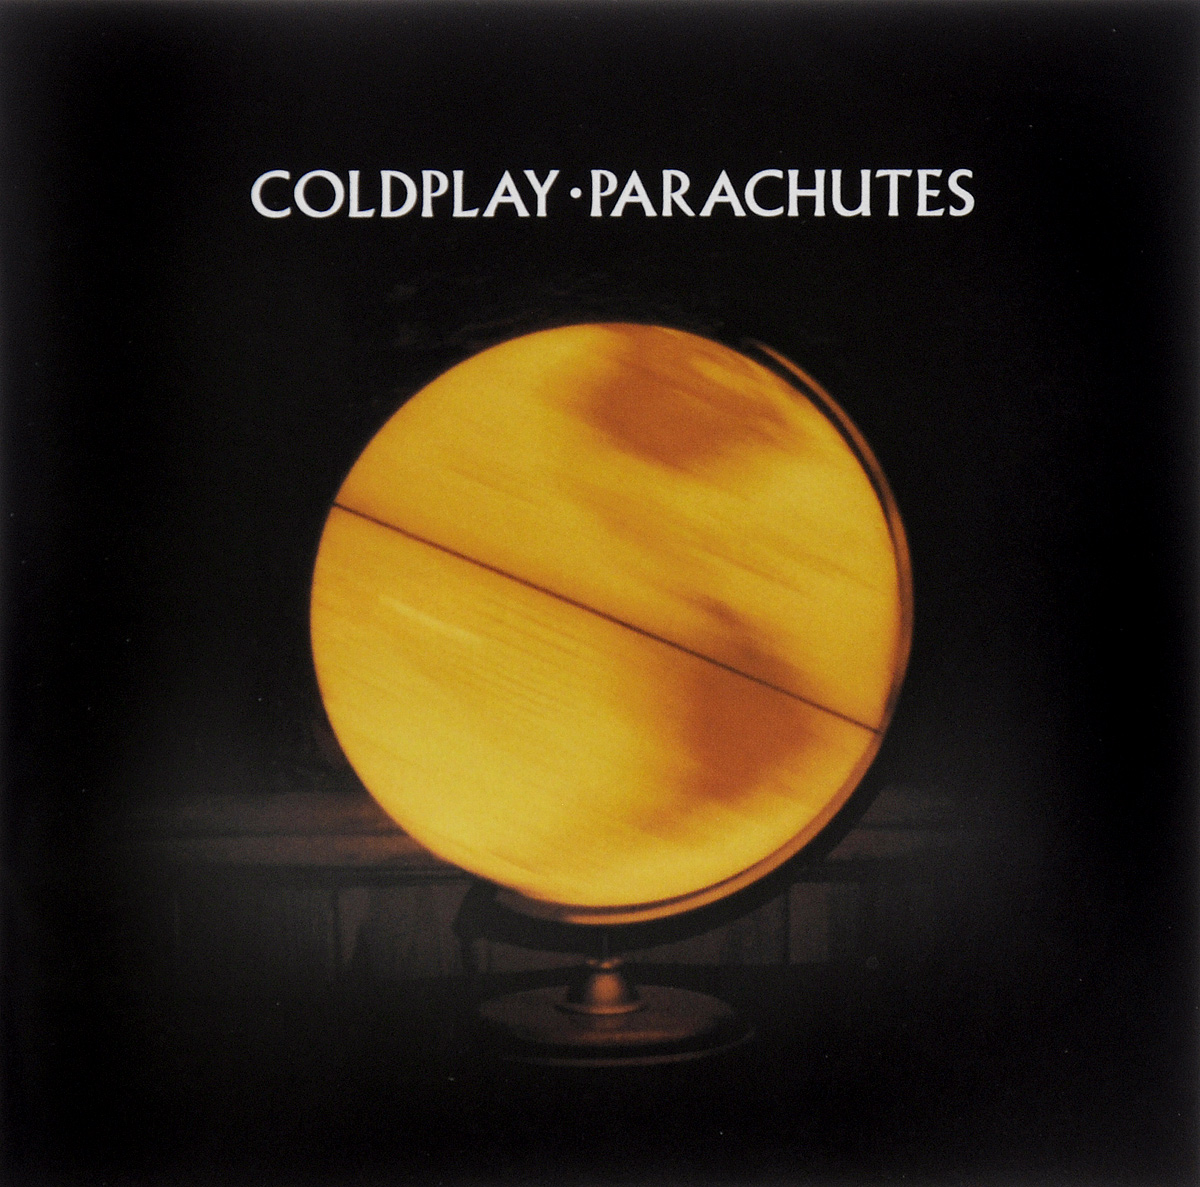 Coldplay Coldplay. Parachutes coldplay